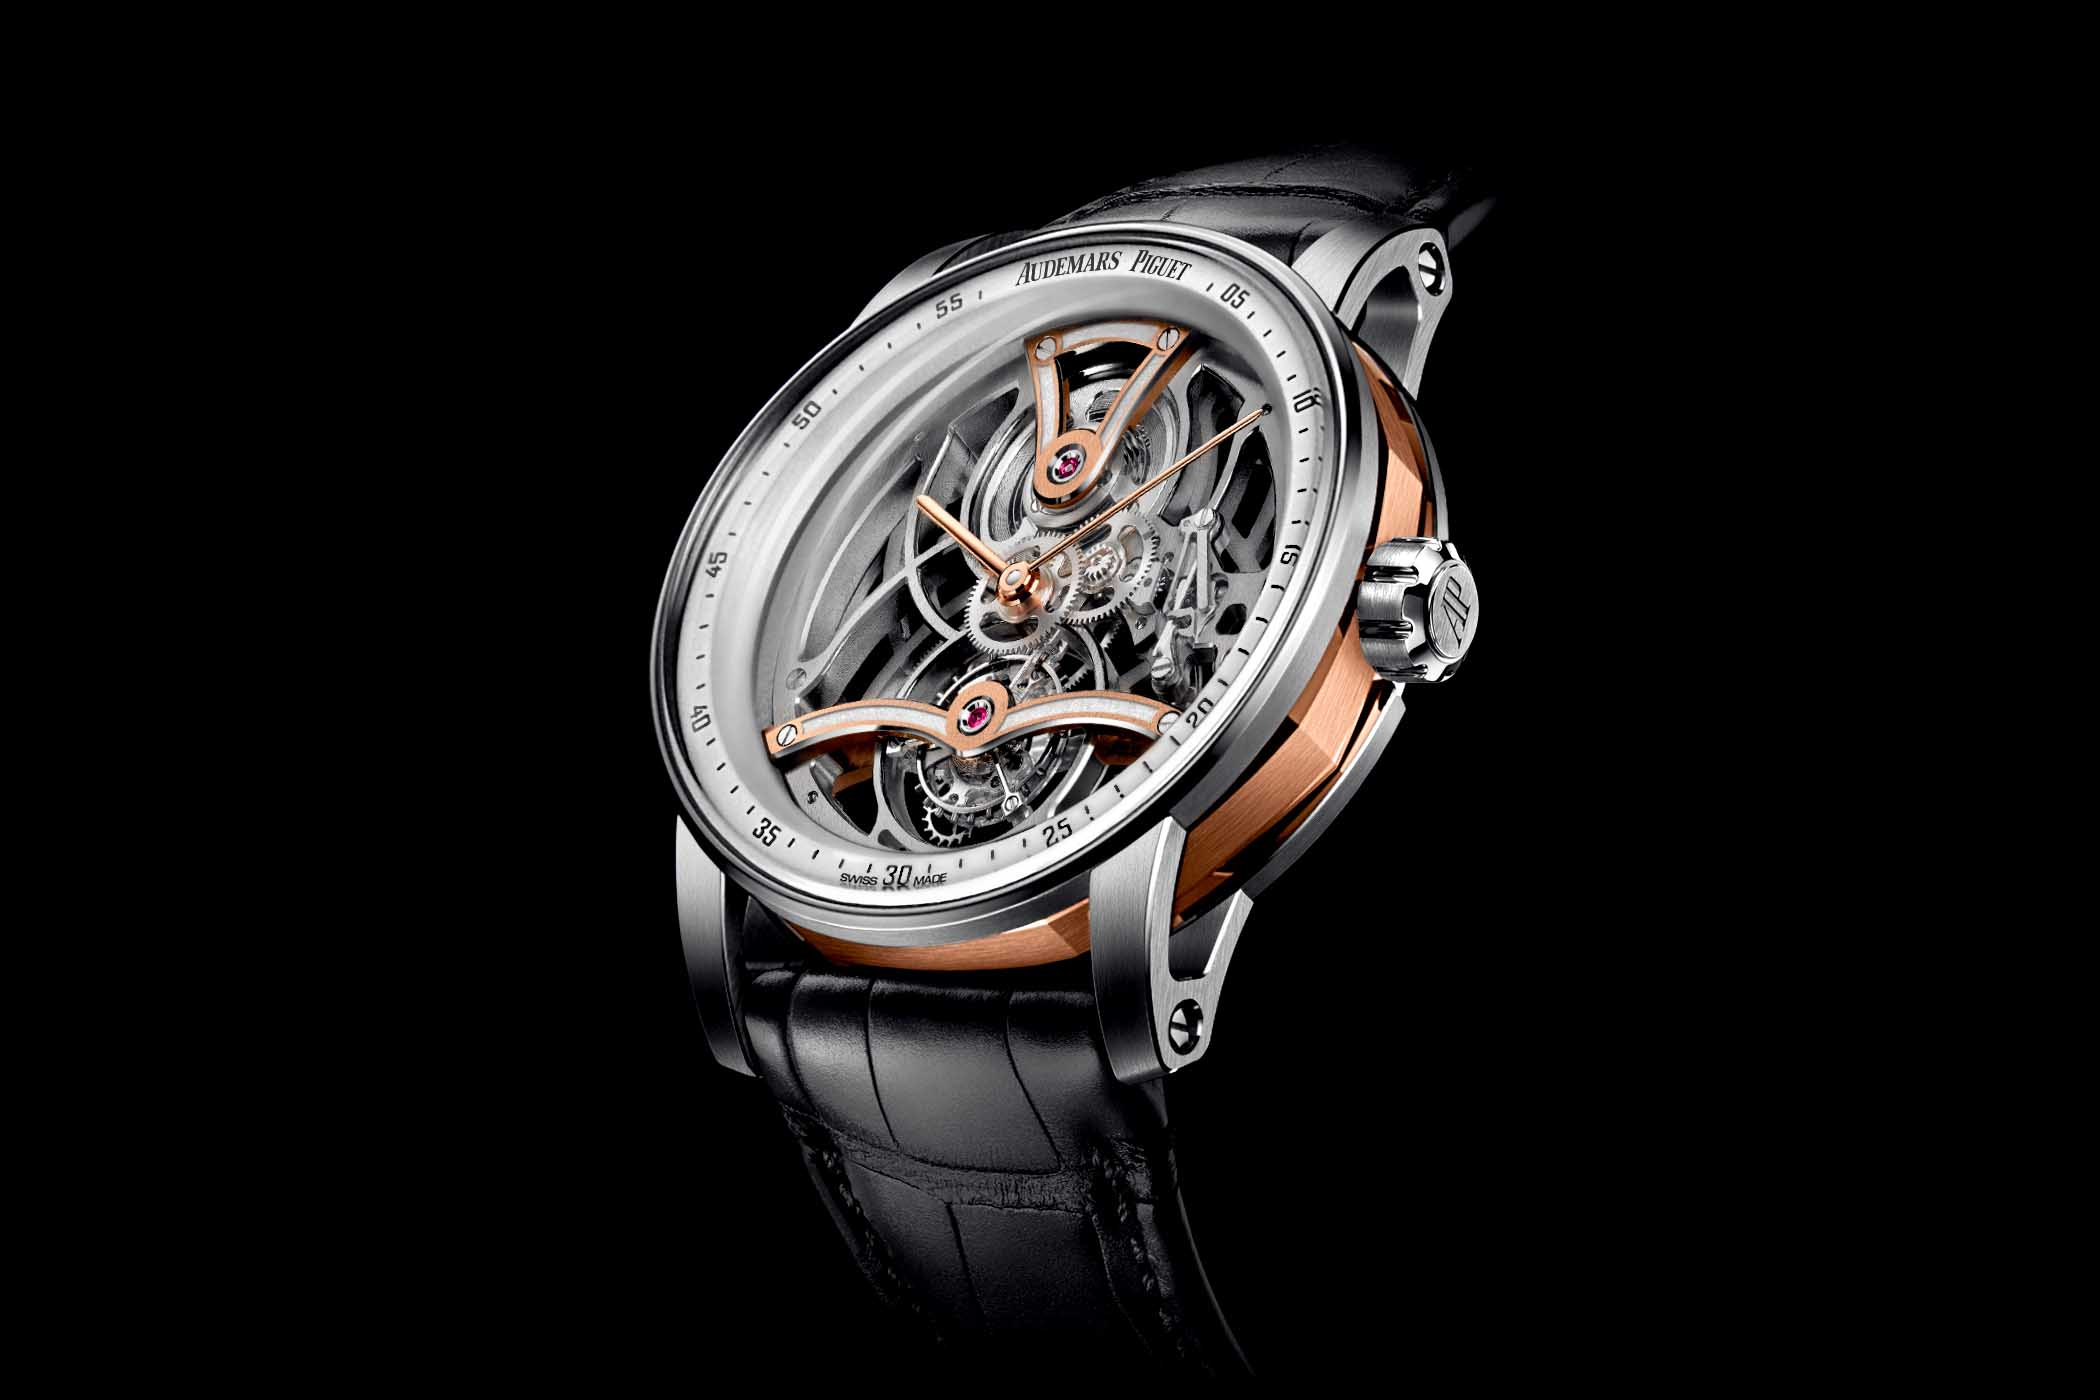 Only-Watch-2019-Audemars-Piguet-Code-11.59-Tourbillon-Openworked-Unique-Piece-Two-Tone